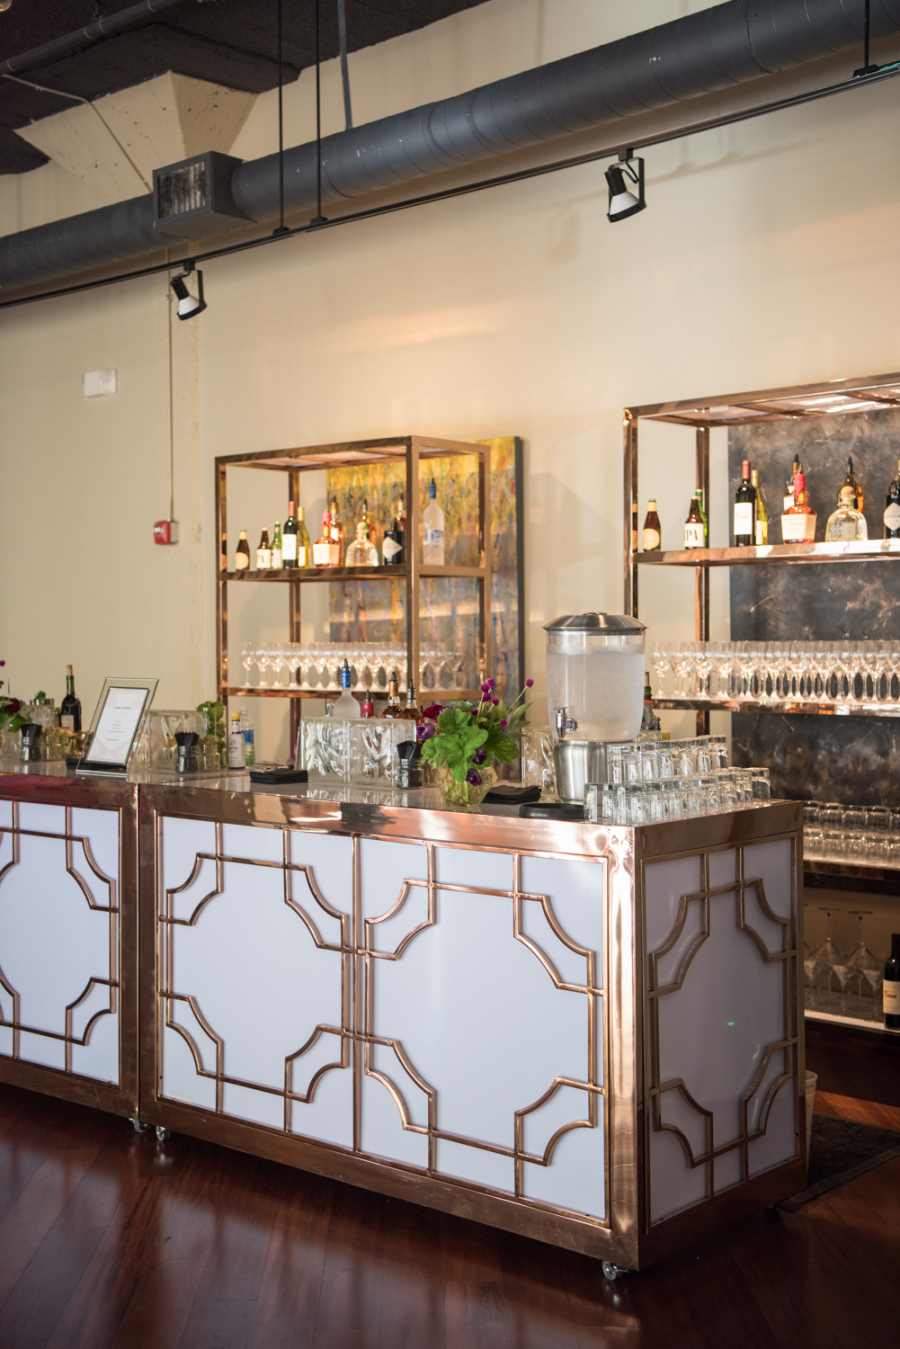 Even the bar was decorated in art deco style, in white and copper for a cool look